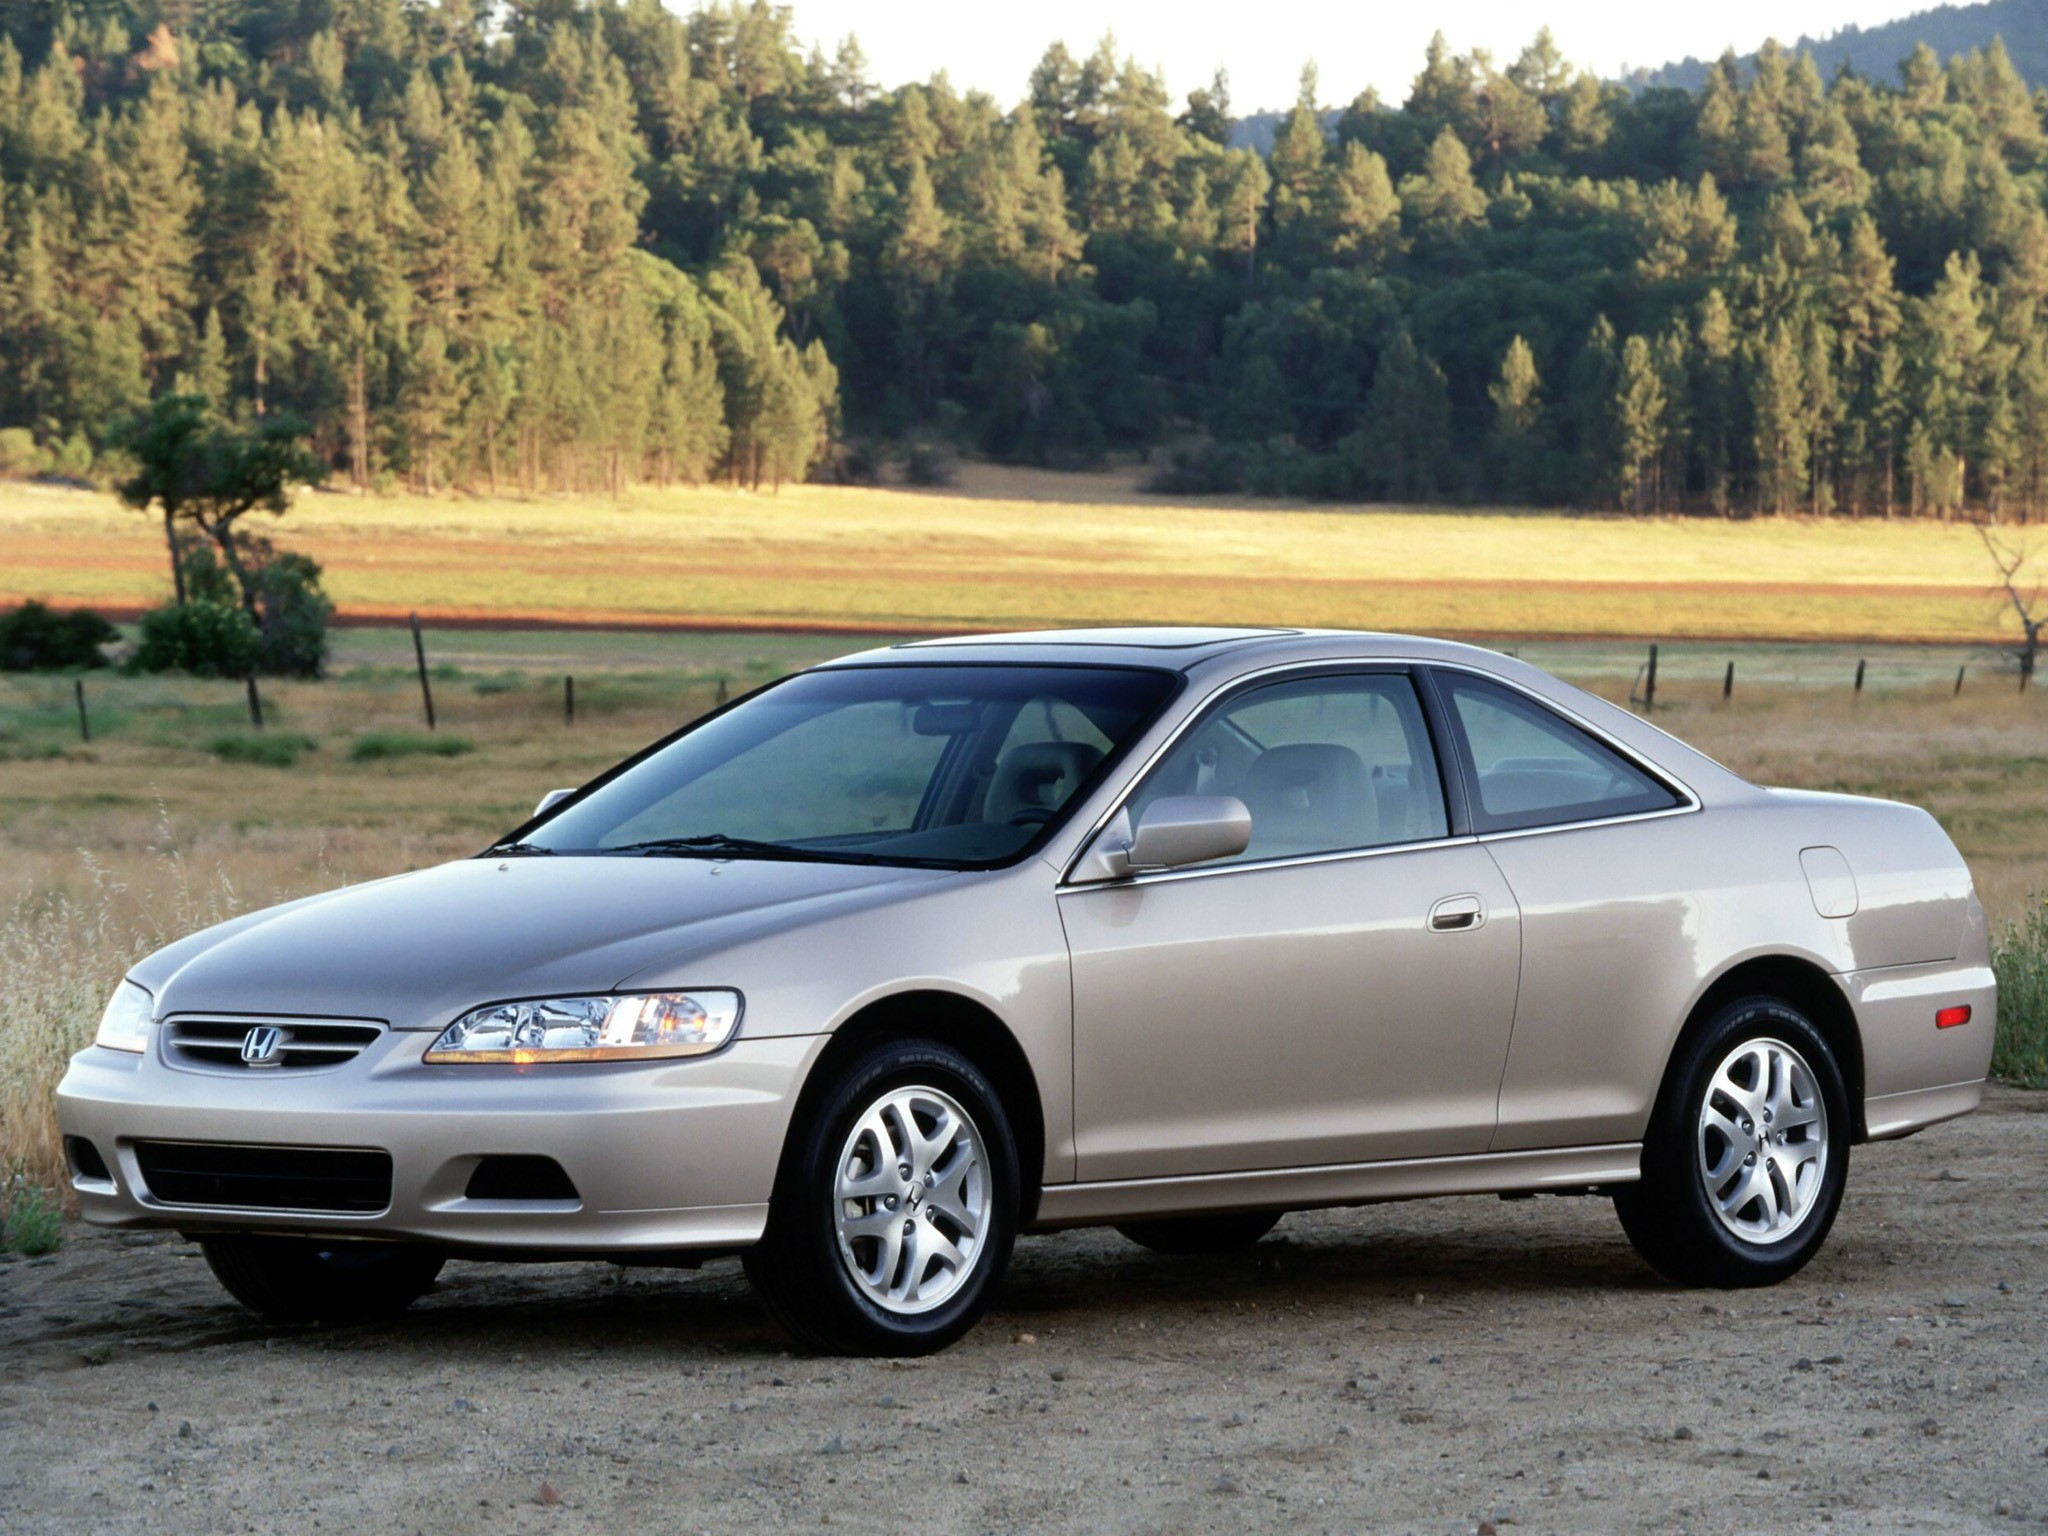 ... HONDA Accord Coupe (1998 - 2002) ...